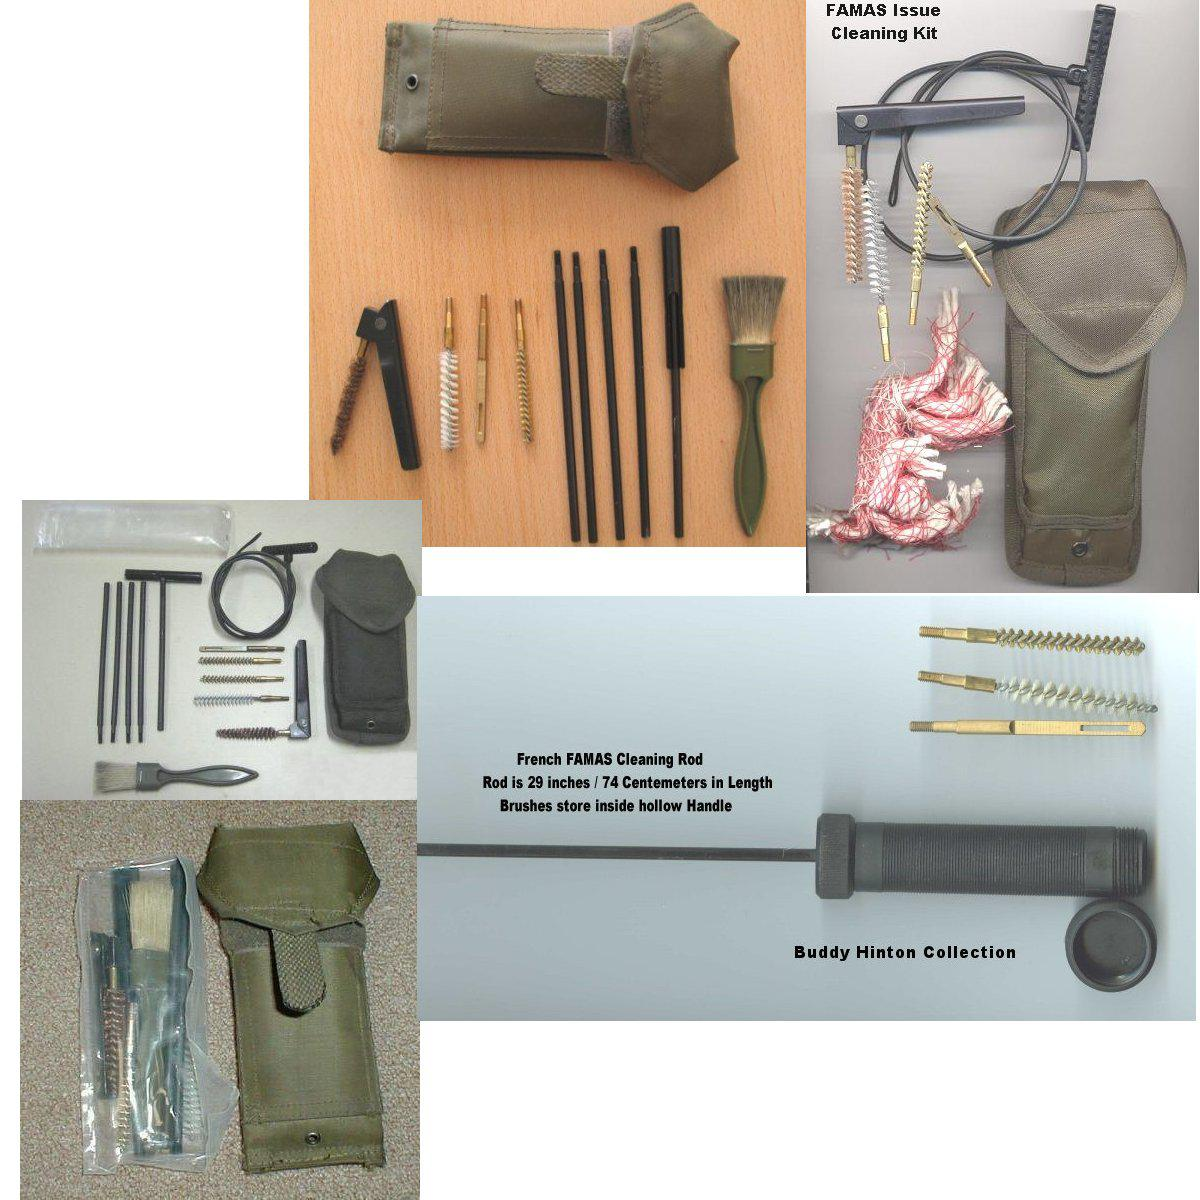 FAMAS_CleaningKits5.jpg